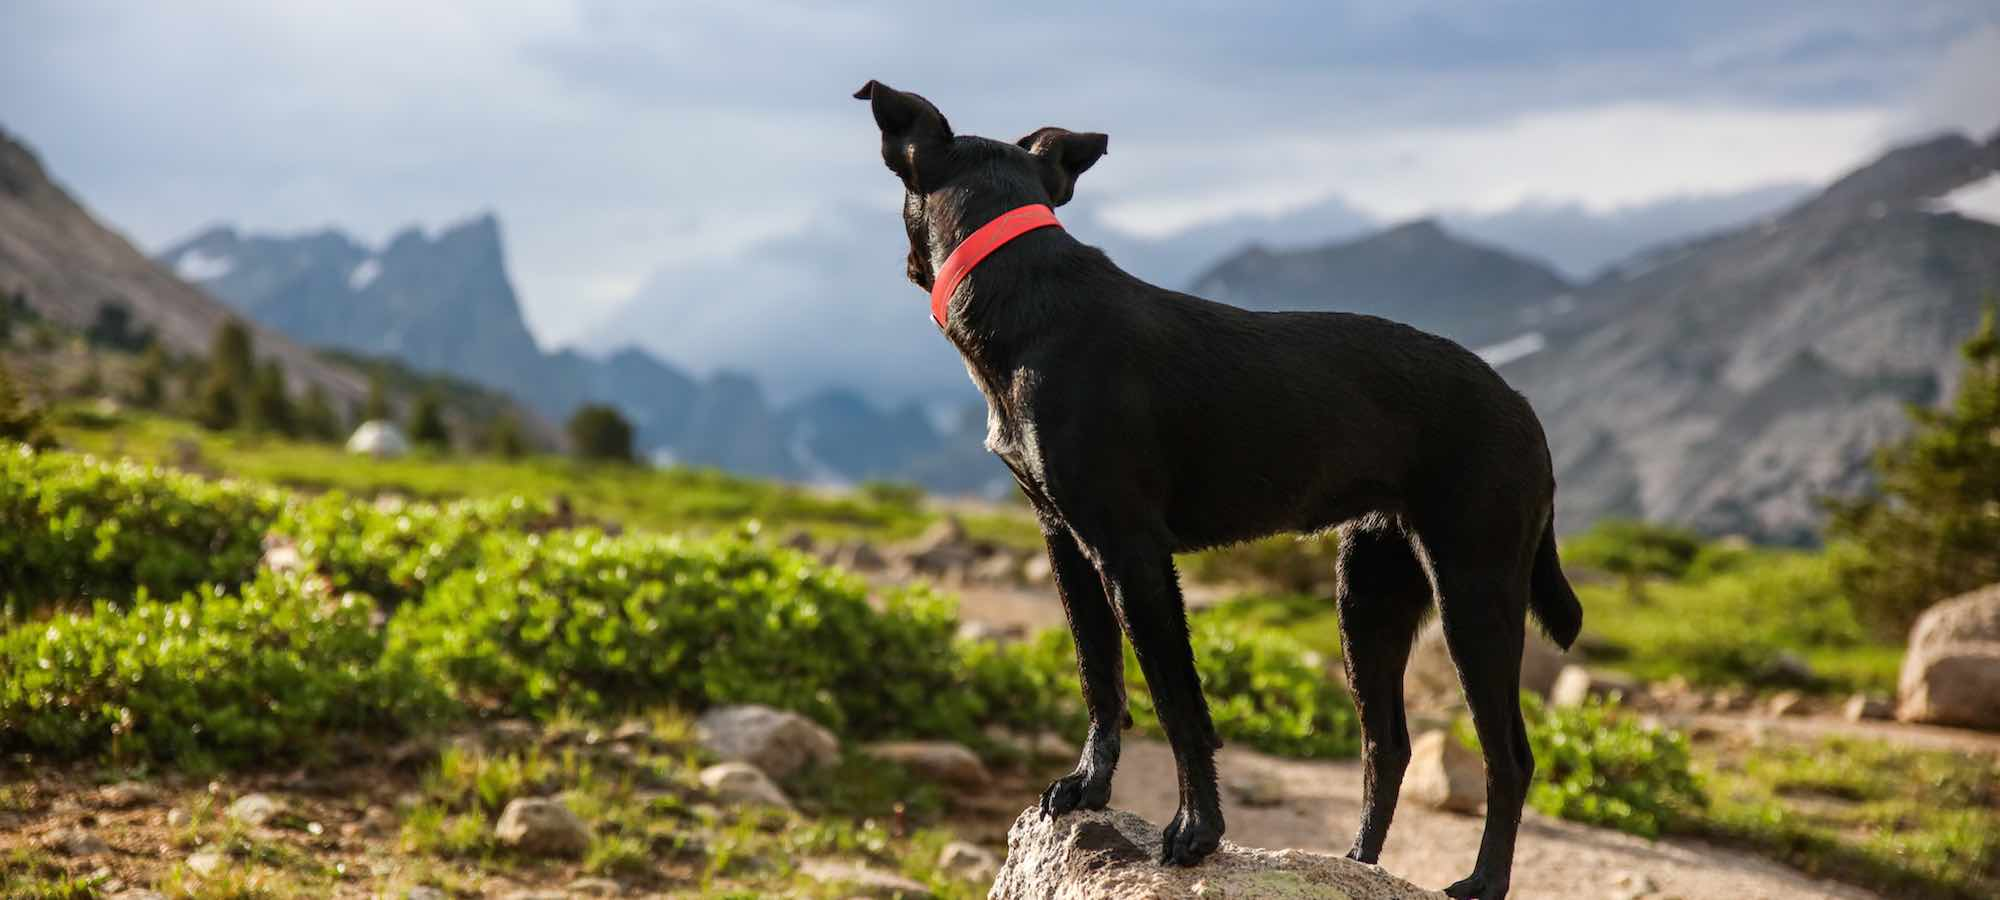 Black dog with red collar outside in mountains